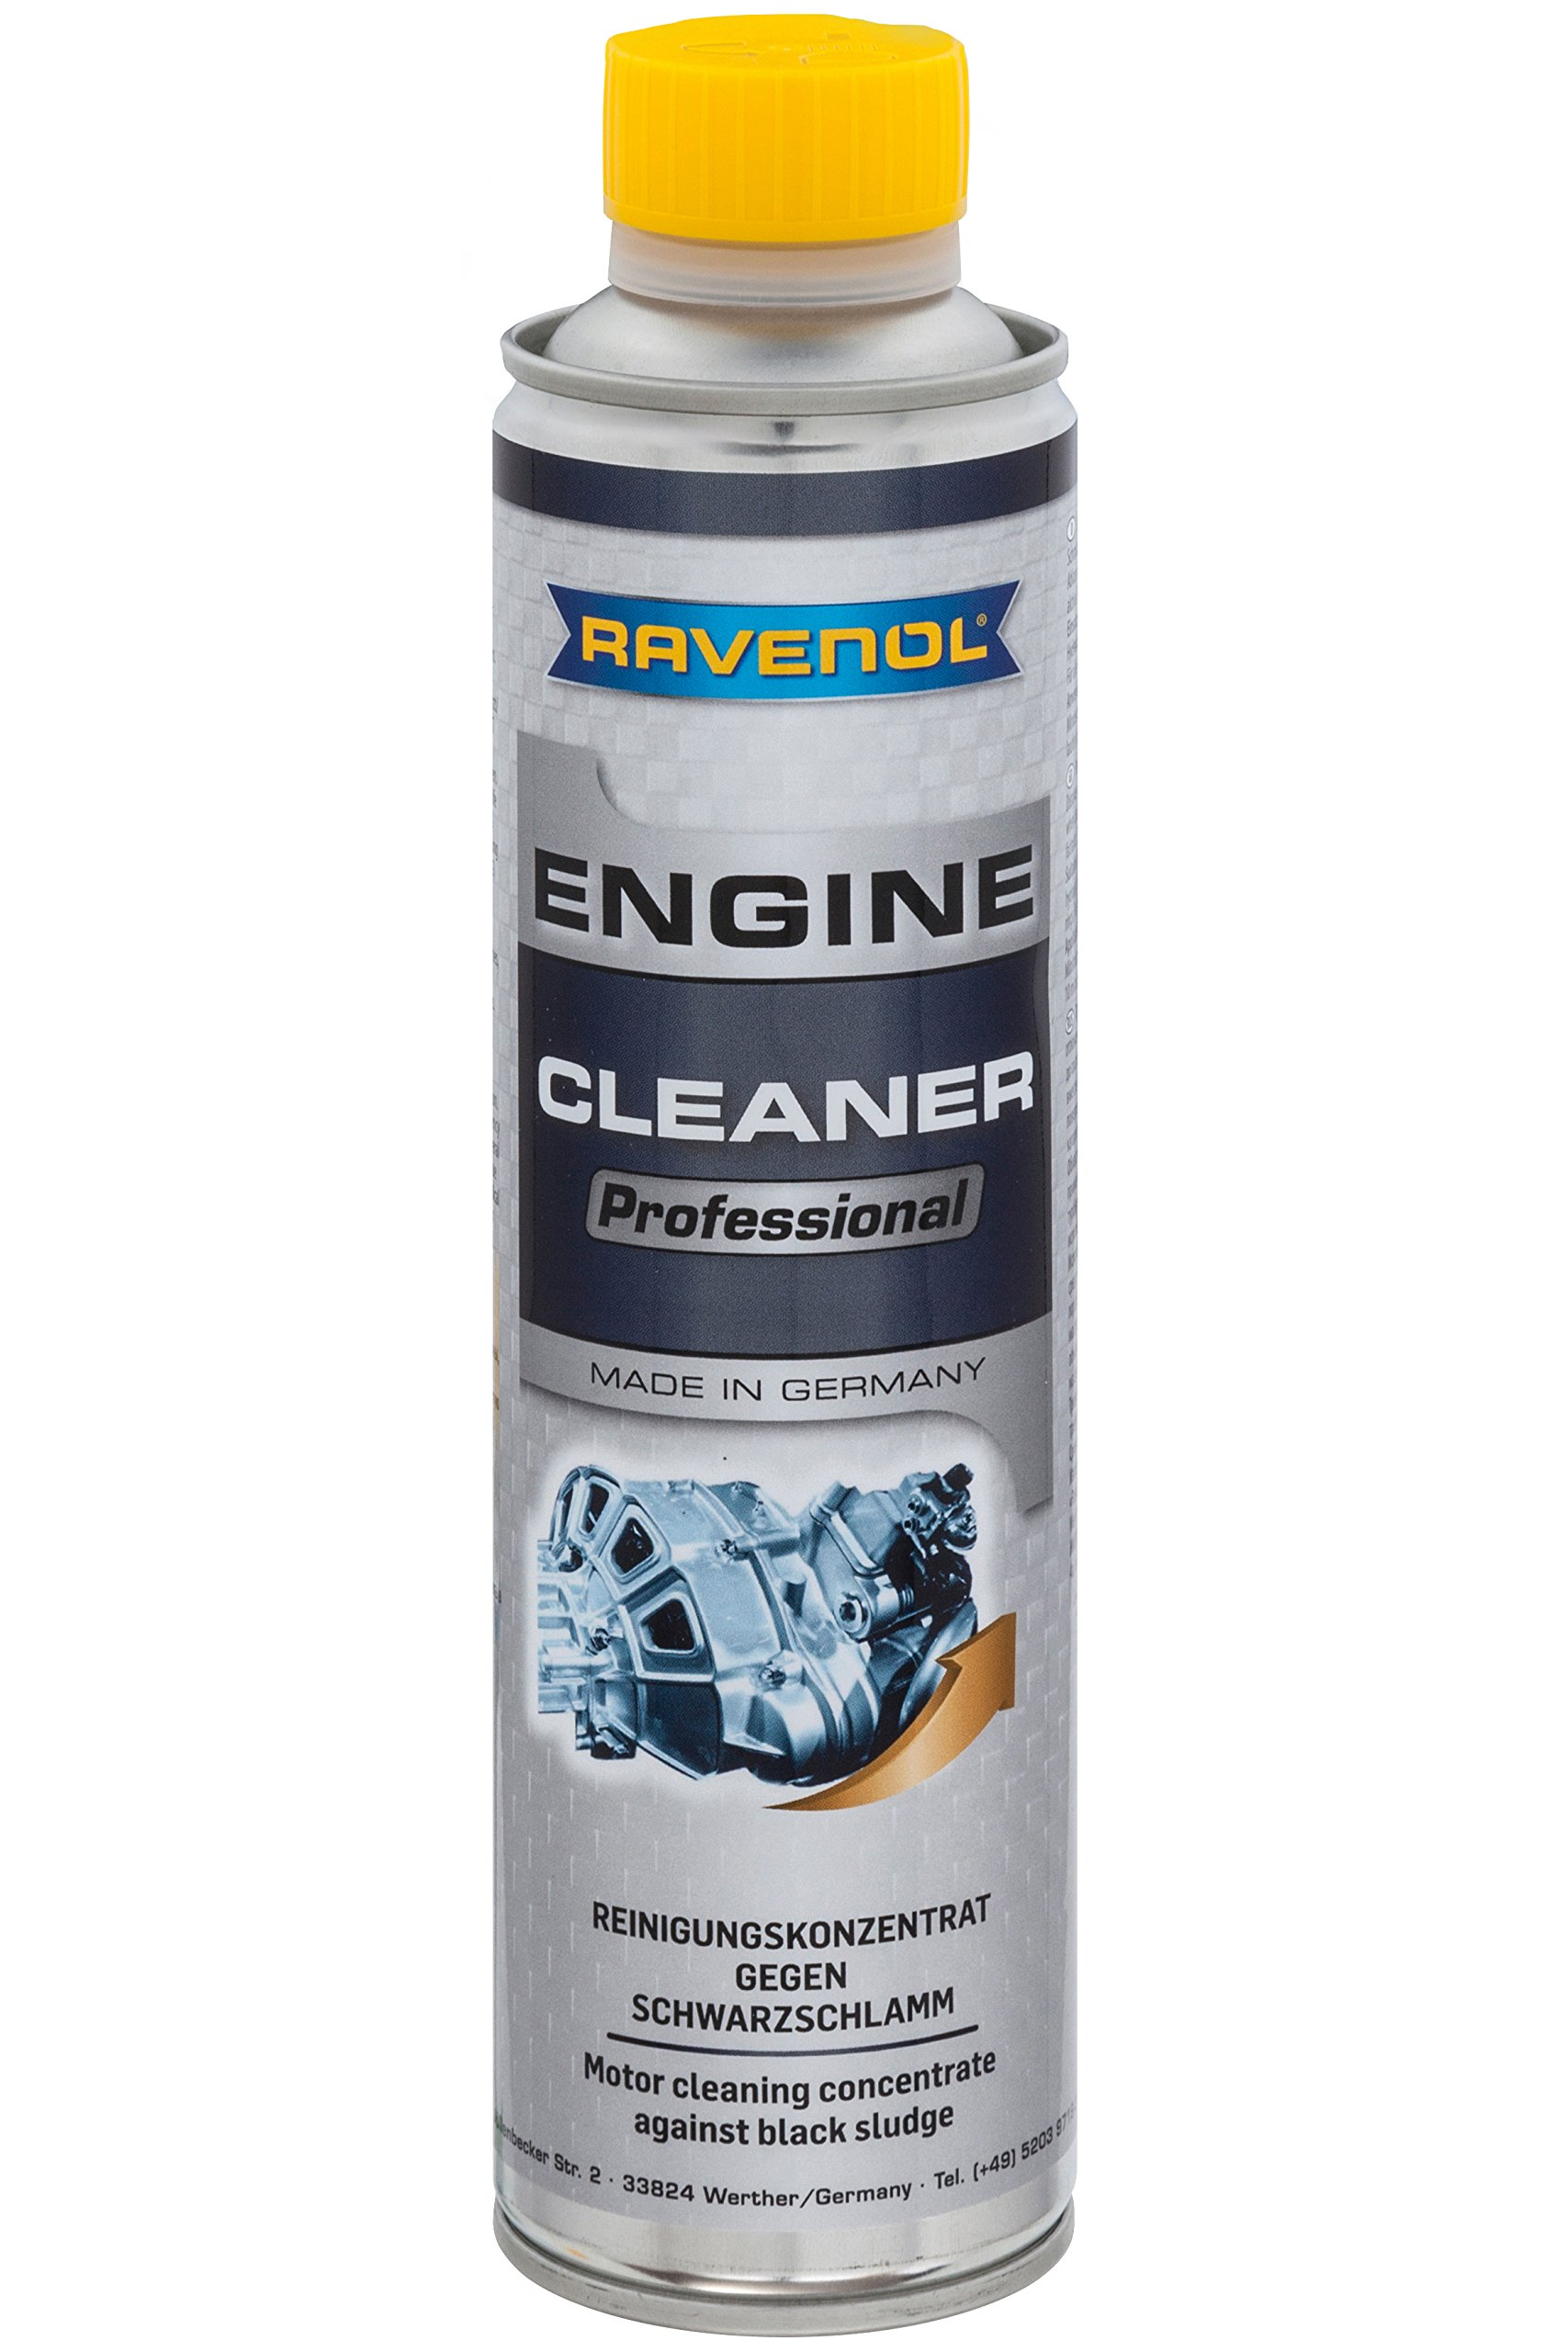 RAVENOL J8A0101-400 Professional Engine Cleaner - Engine Oil System Cleaning and Flush Treatment (400 ml) by Ravenol